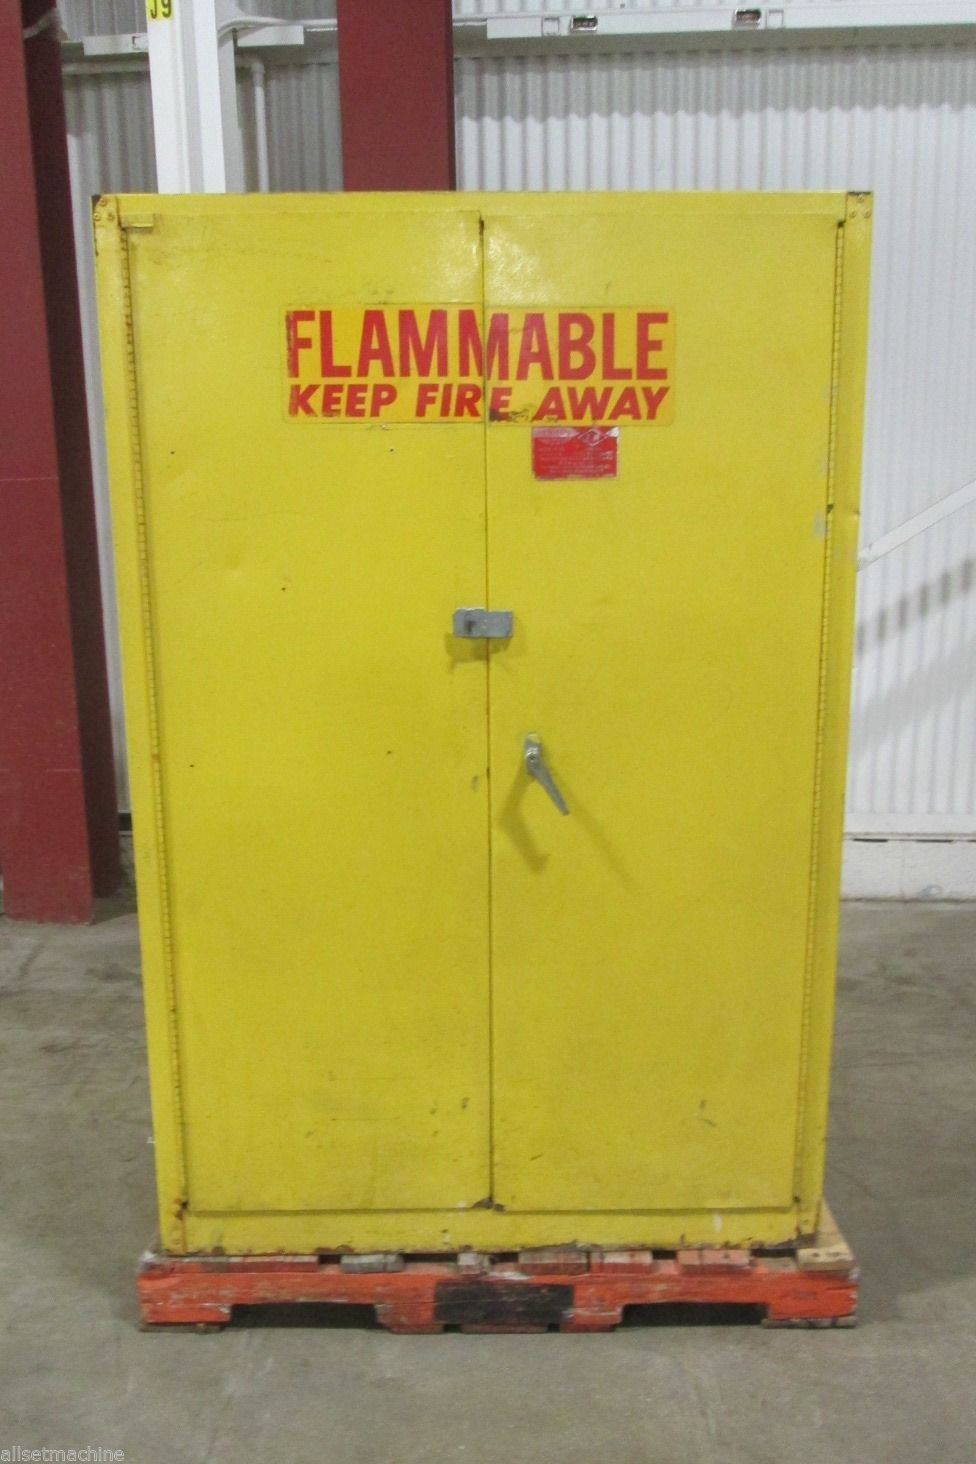 45 Gallon Fire Proof Storage Cabinet With 2 Shelves. __New Arrivals Daily! BROOK PARK OH 44142   WESTLAKE OH 44145. CLEVELAND OHIO AREA LOCATIONS. & Eagle Manufacturing Metal Storage Cabinet - Used - AM15480 ...